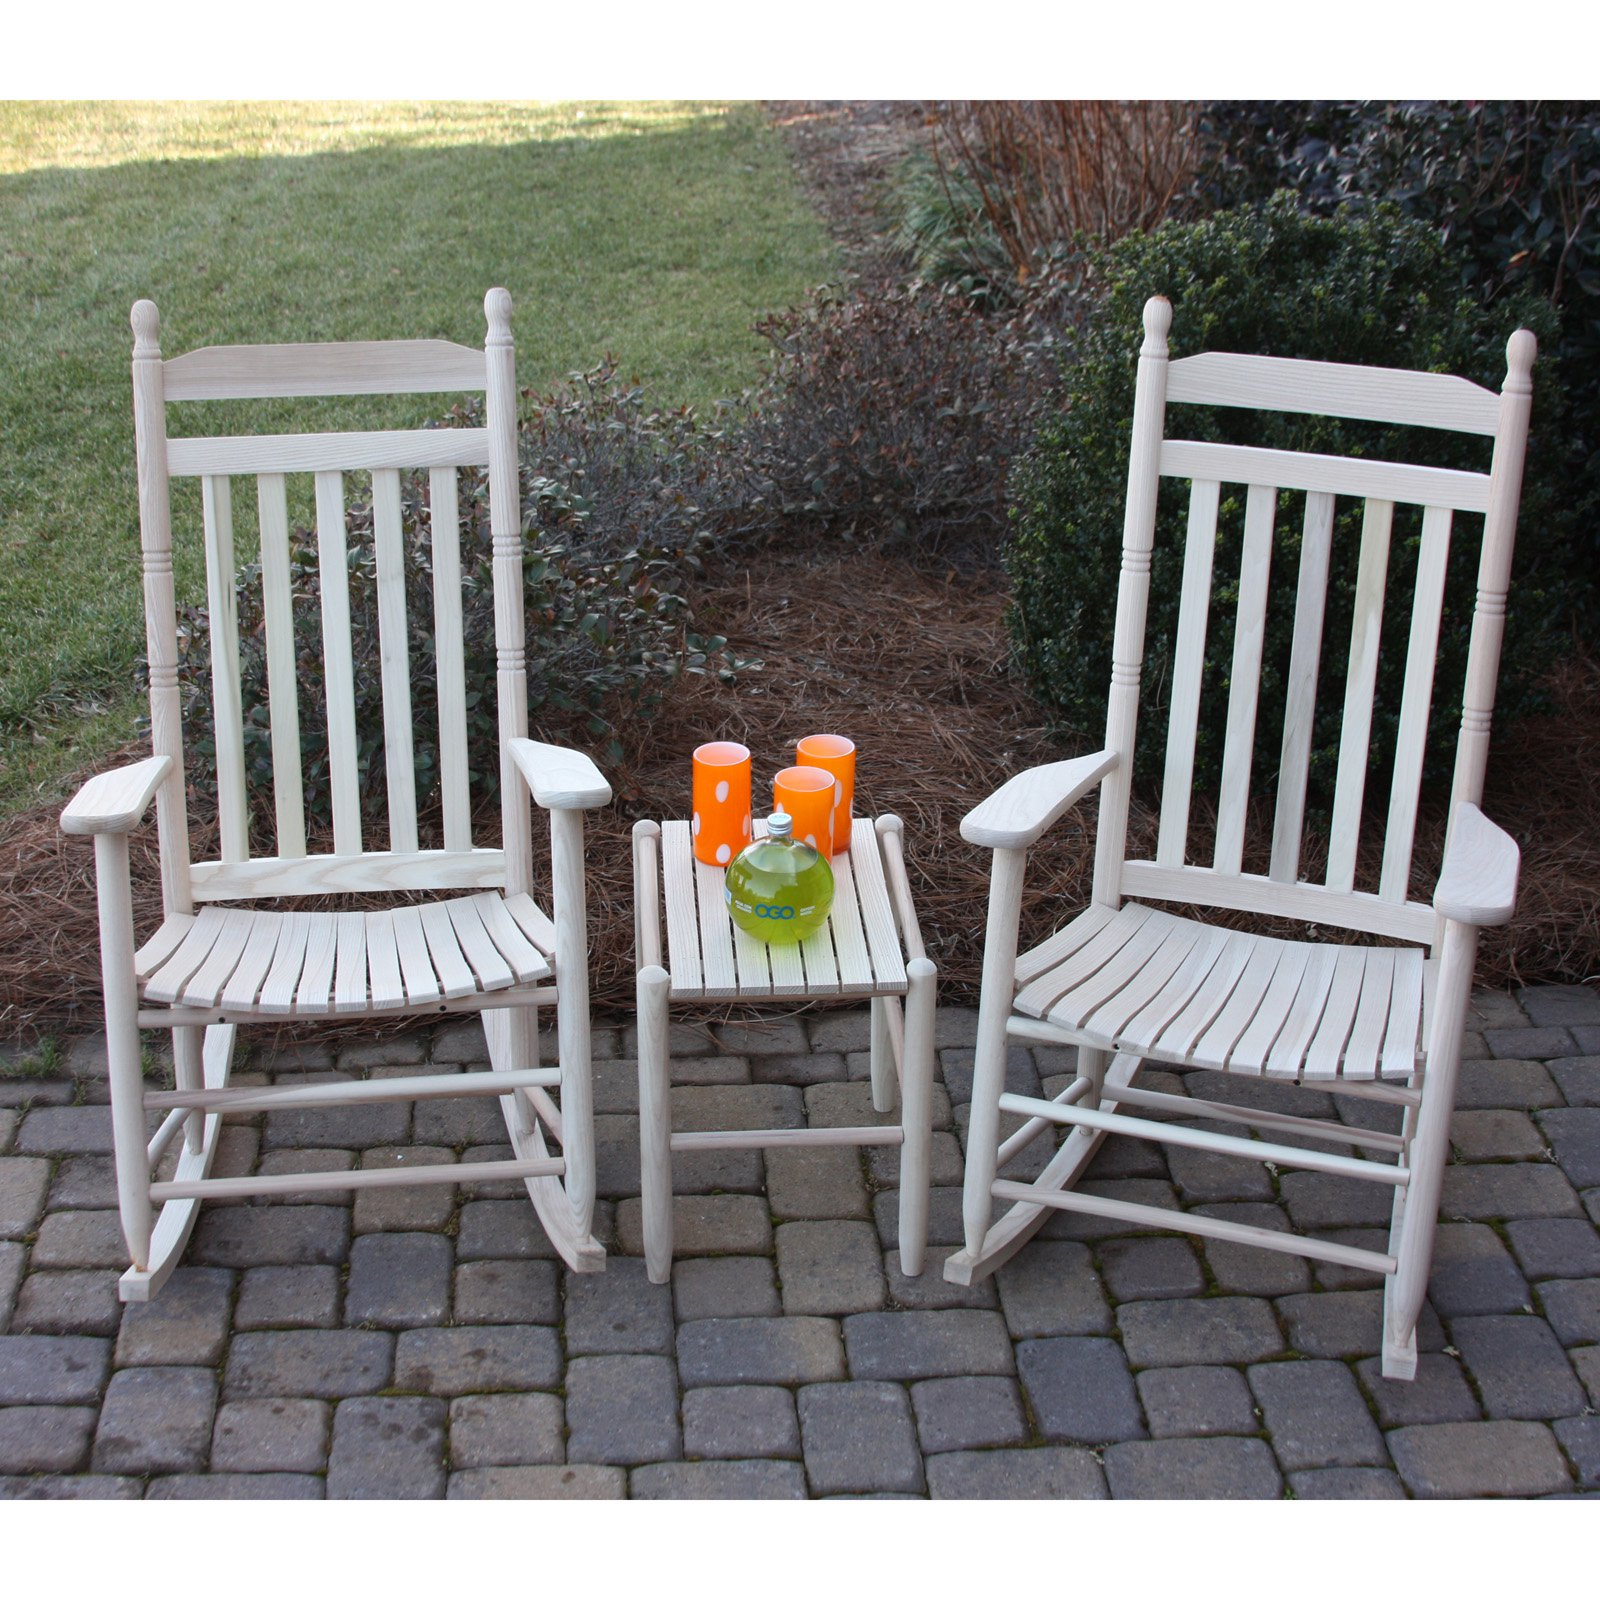 Dixie Seating Company 3 pc. Rocking Chair Set with Side Table - Unfinished